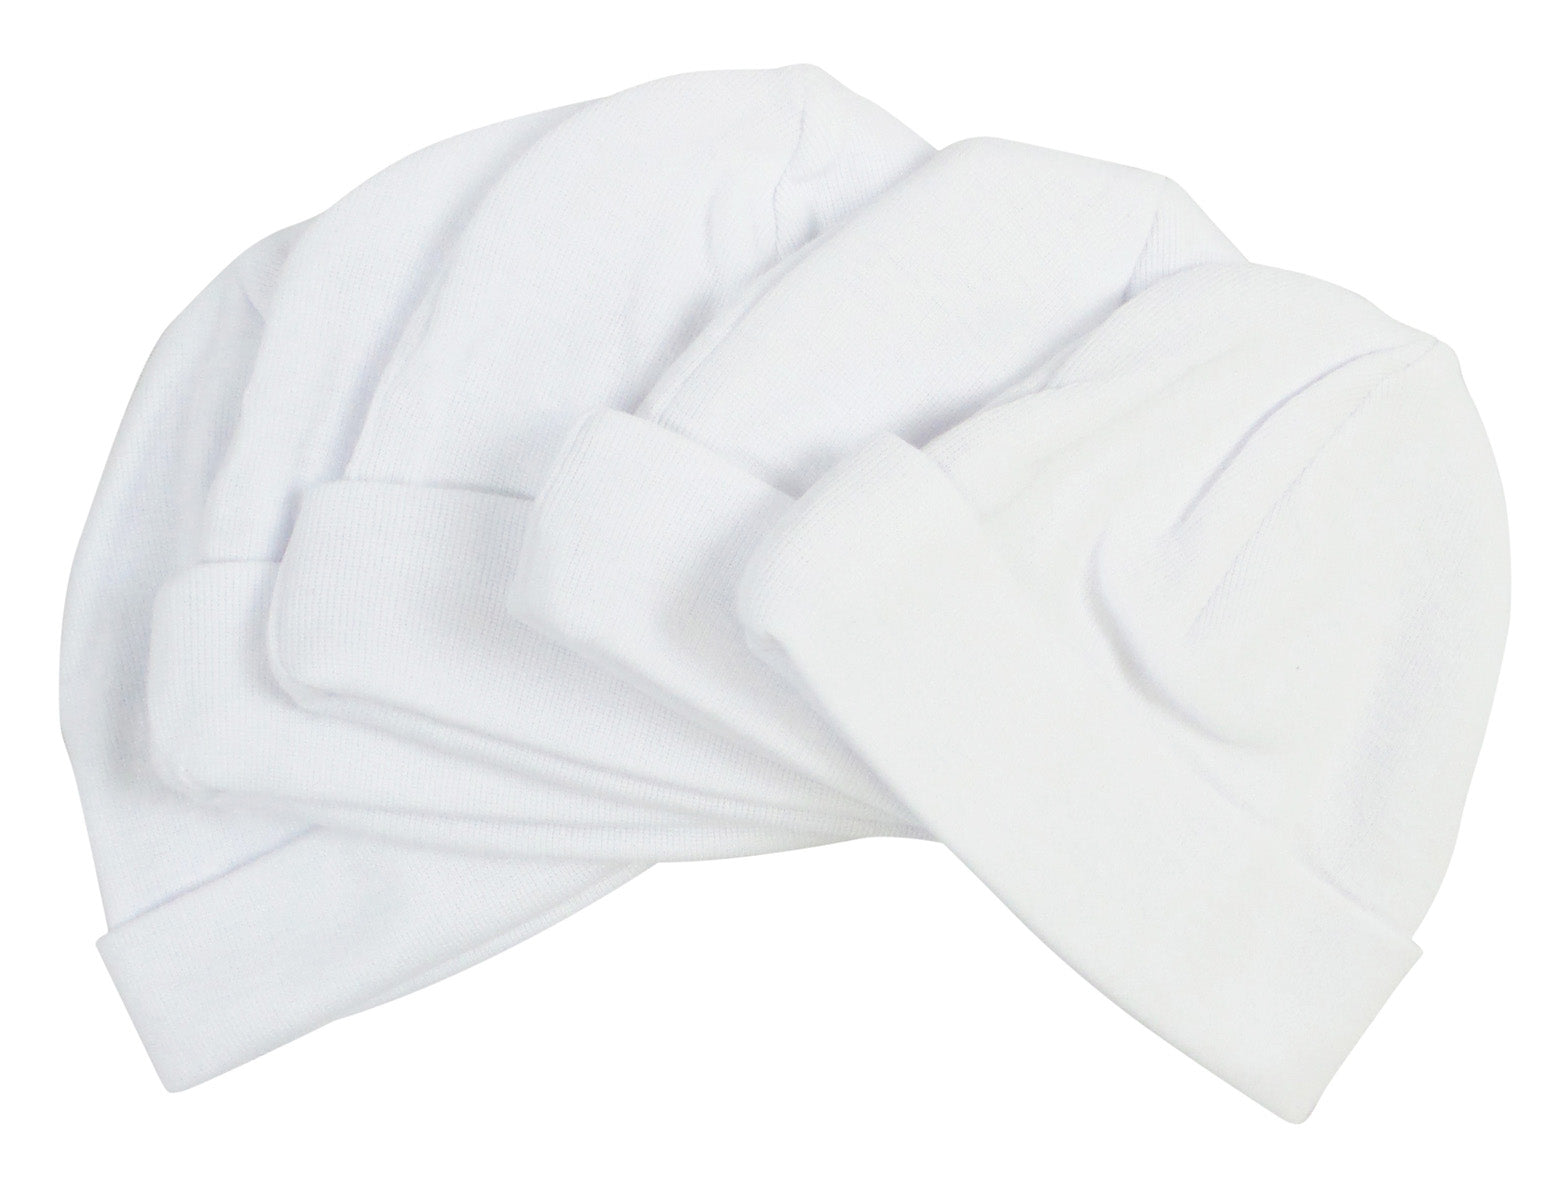 Bambini White Baby Cap (Pack of 5)